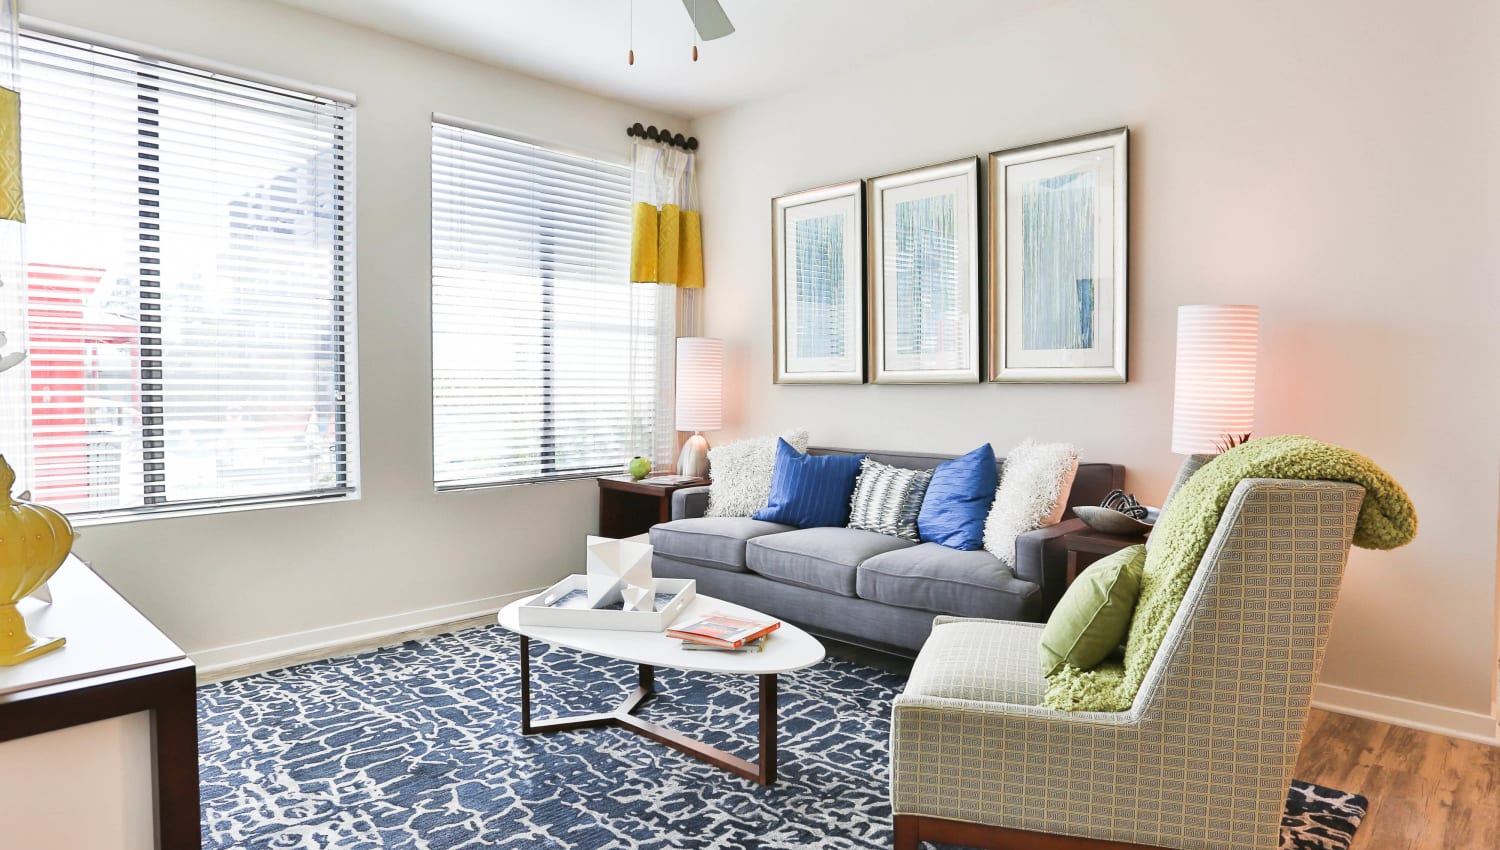 Bay windows and classic furnishings in a model home's living area at Olympus Steelyard in Chandler, Arizona